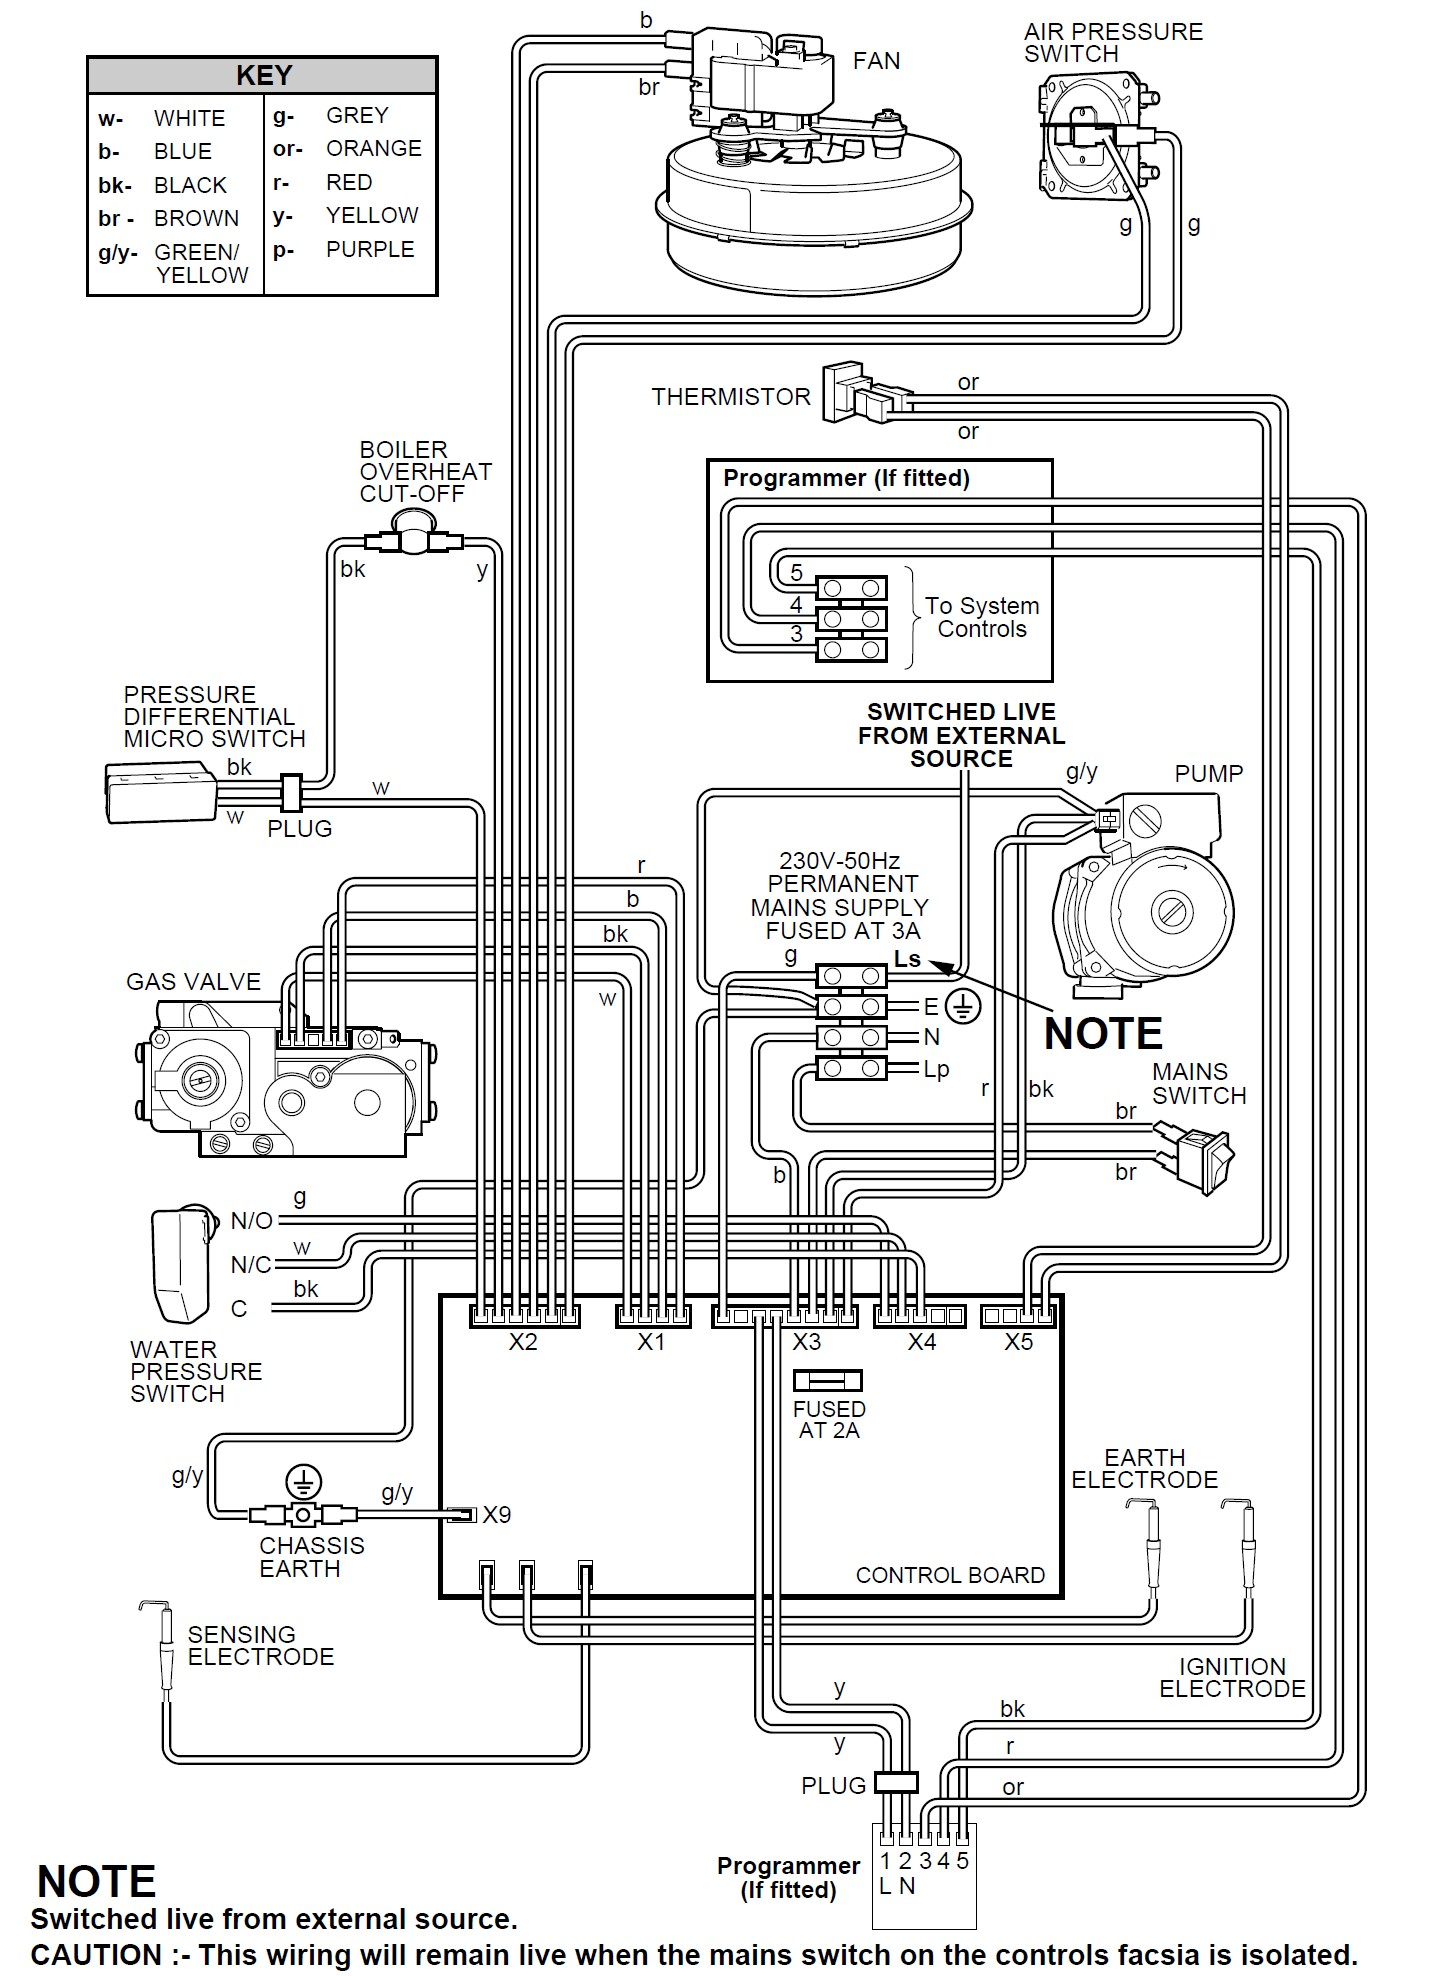 Ask Vaillant Domestic Boilers Air Pressor Wiring Diagram